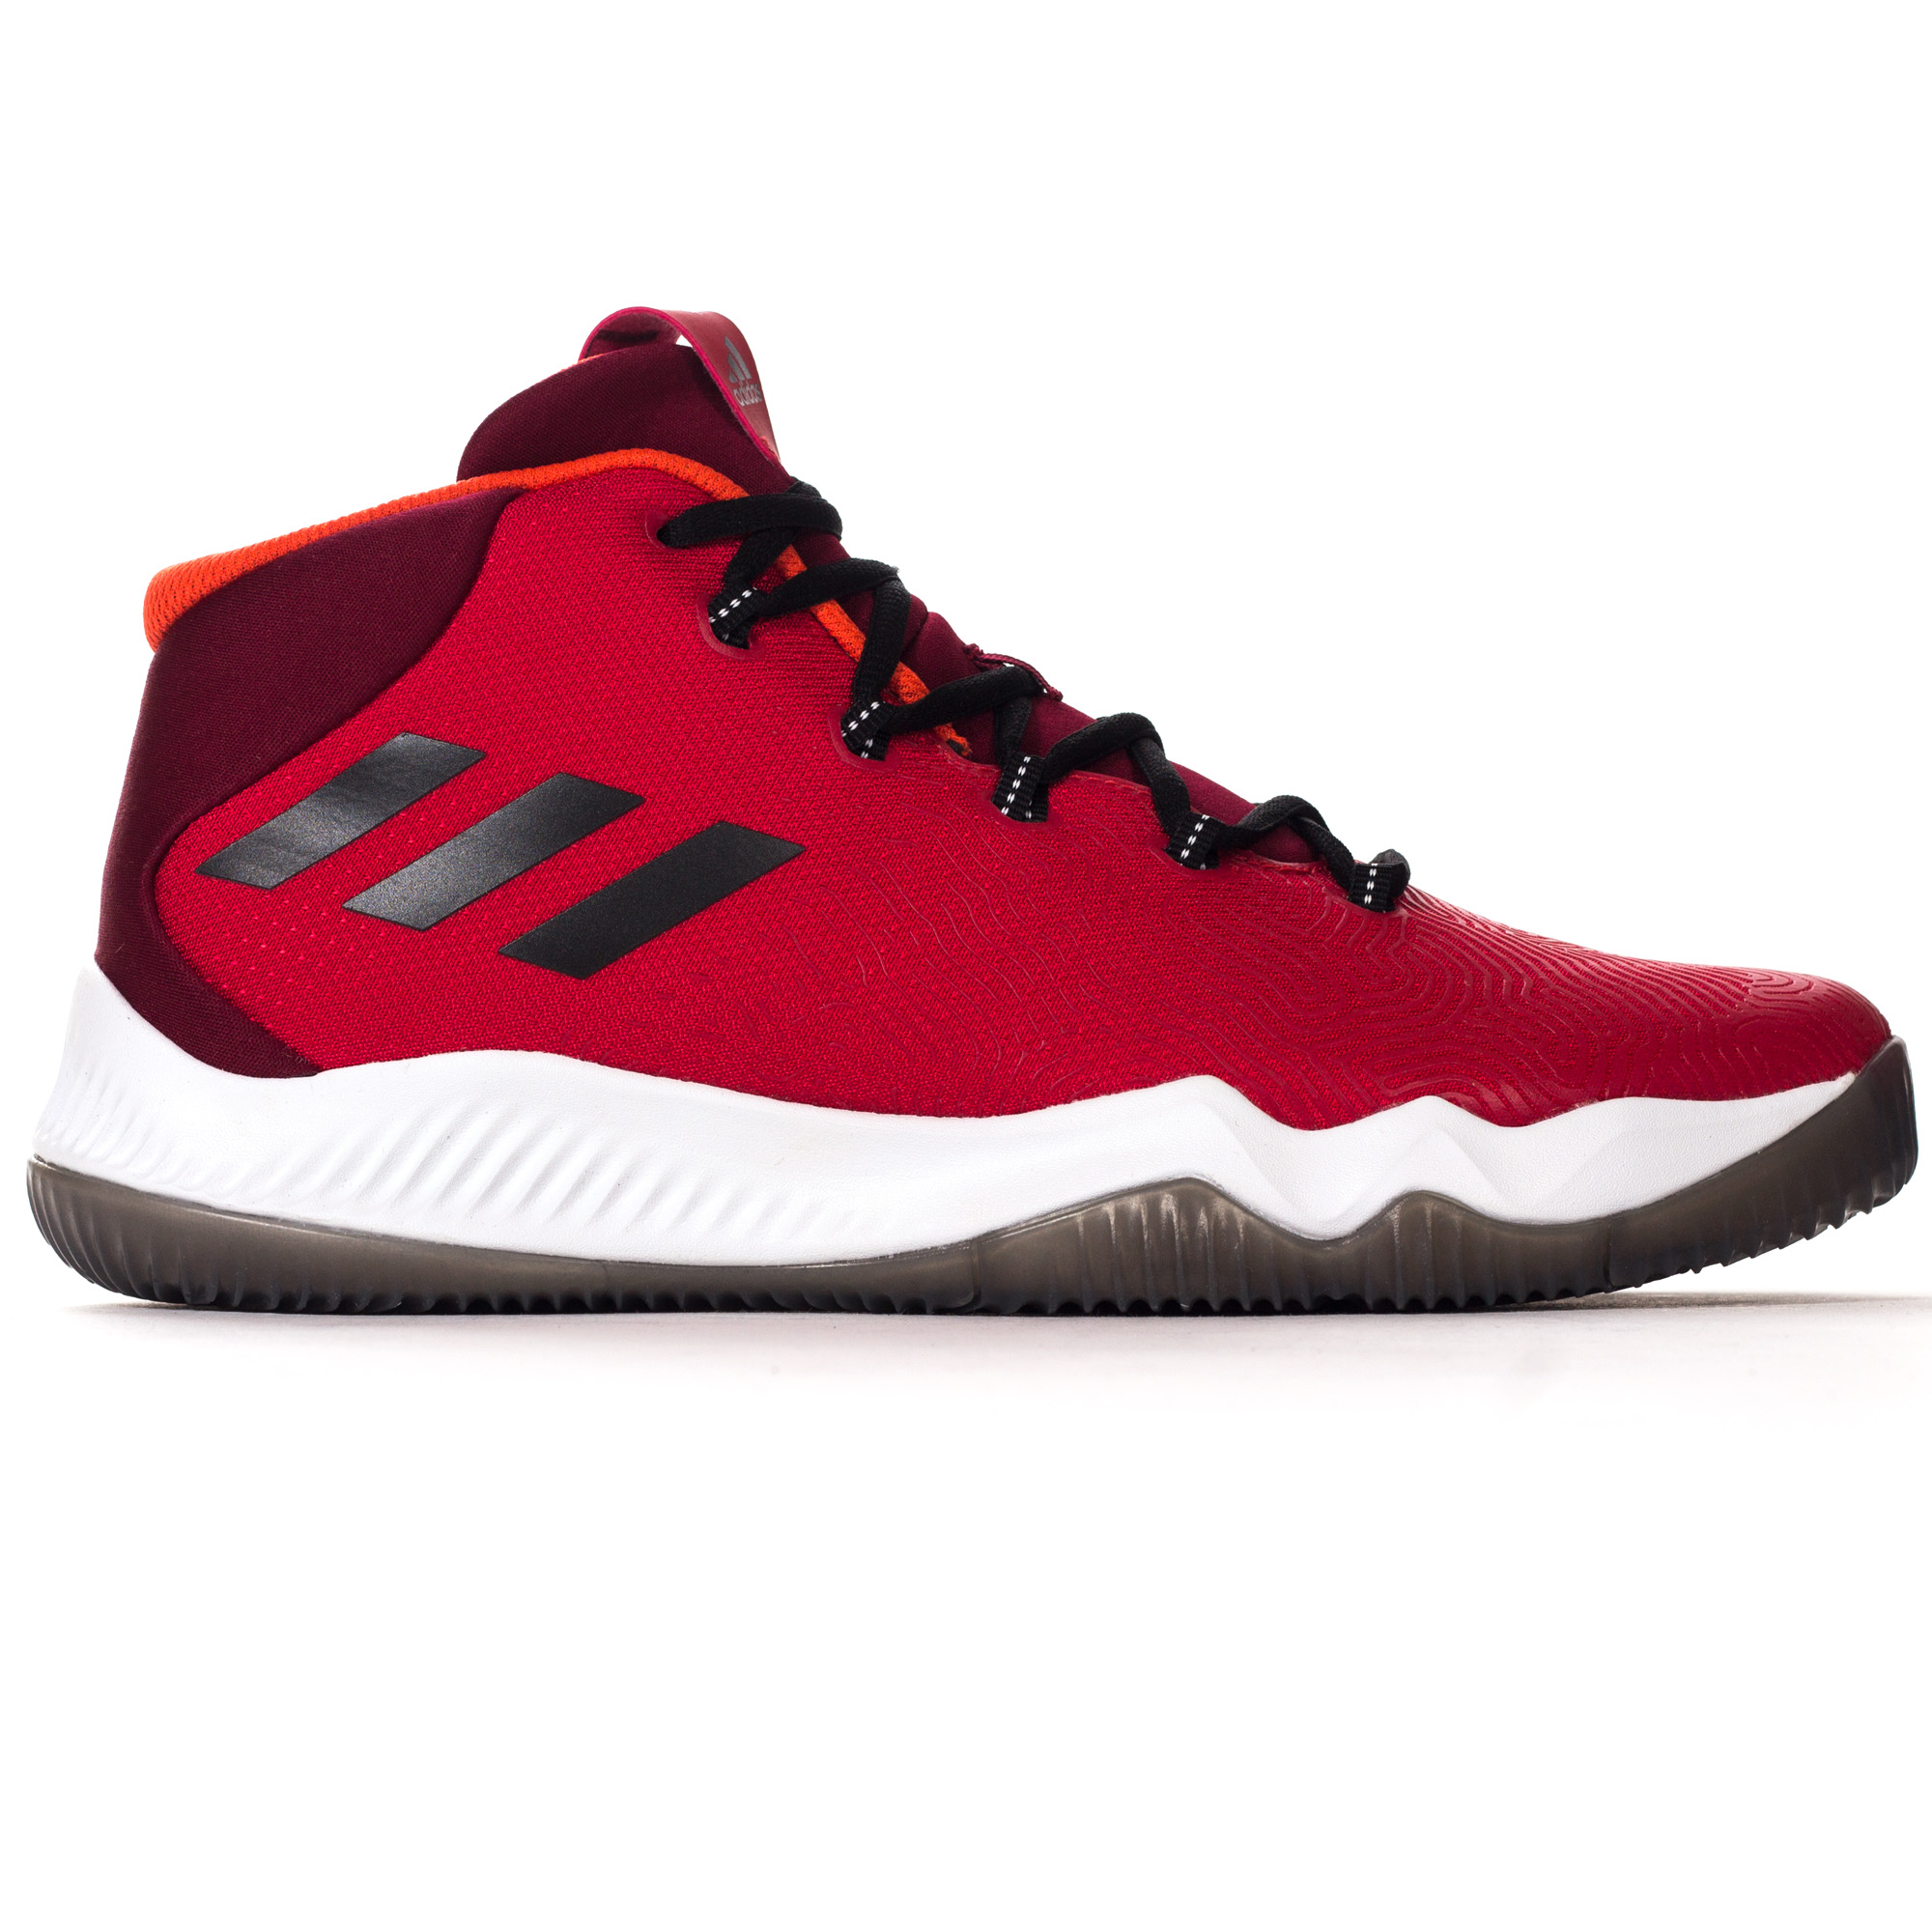 9ac6ce8b187ec9 ... sale uk 01f74 caf87 adidas Crazy Hustle Mens Basketball Court Trainer  Shoe Red ...